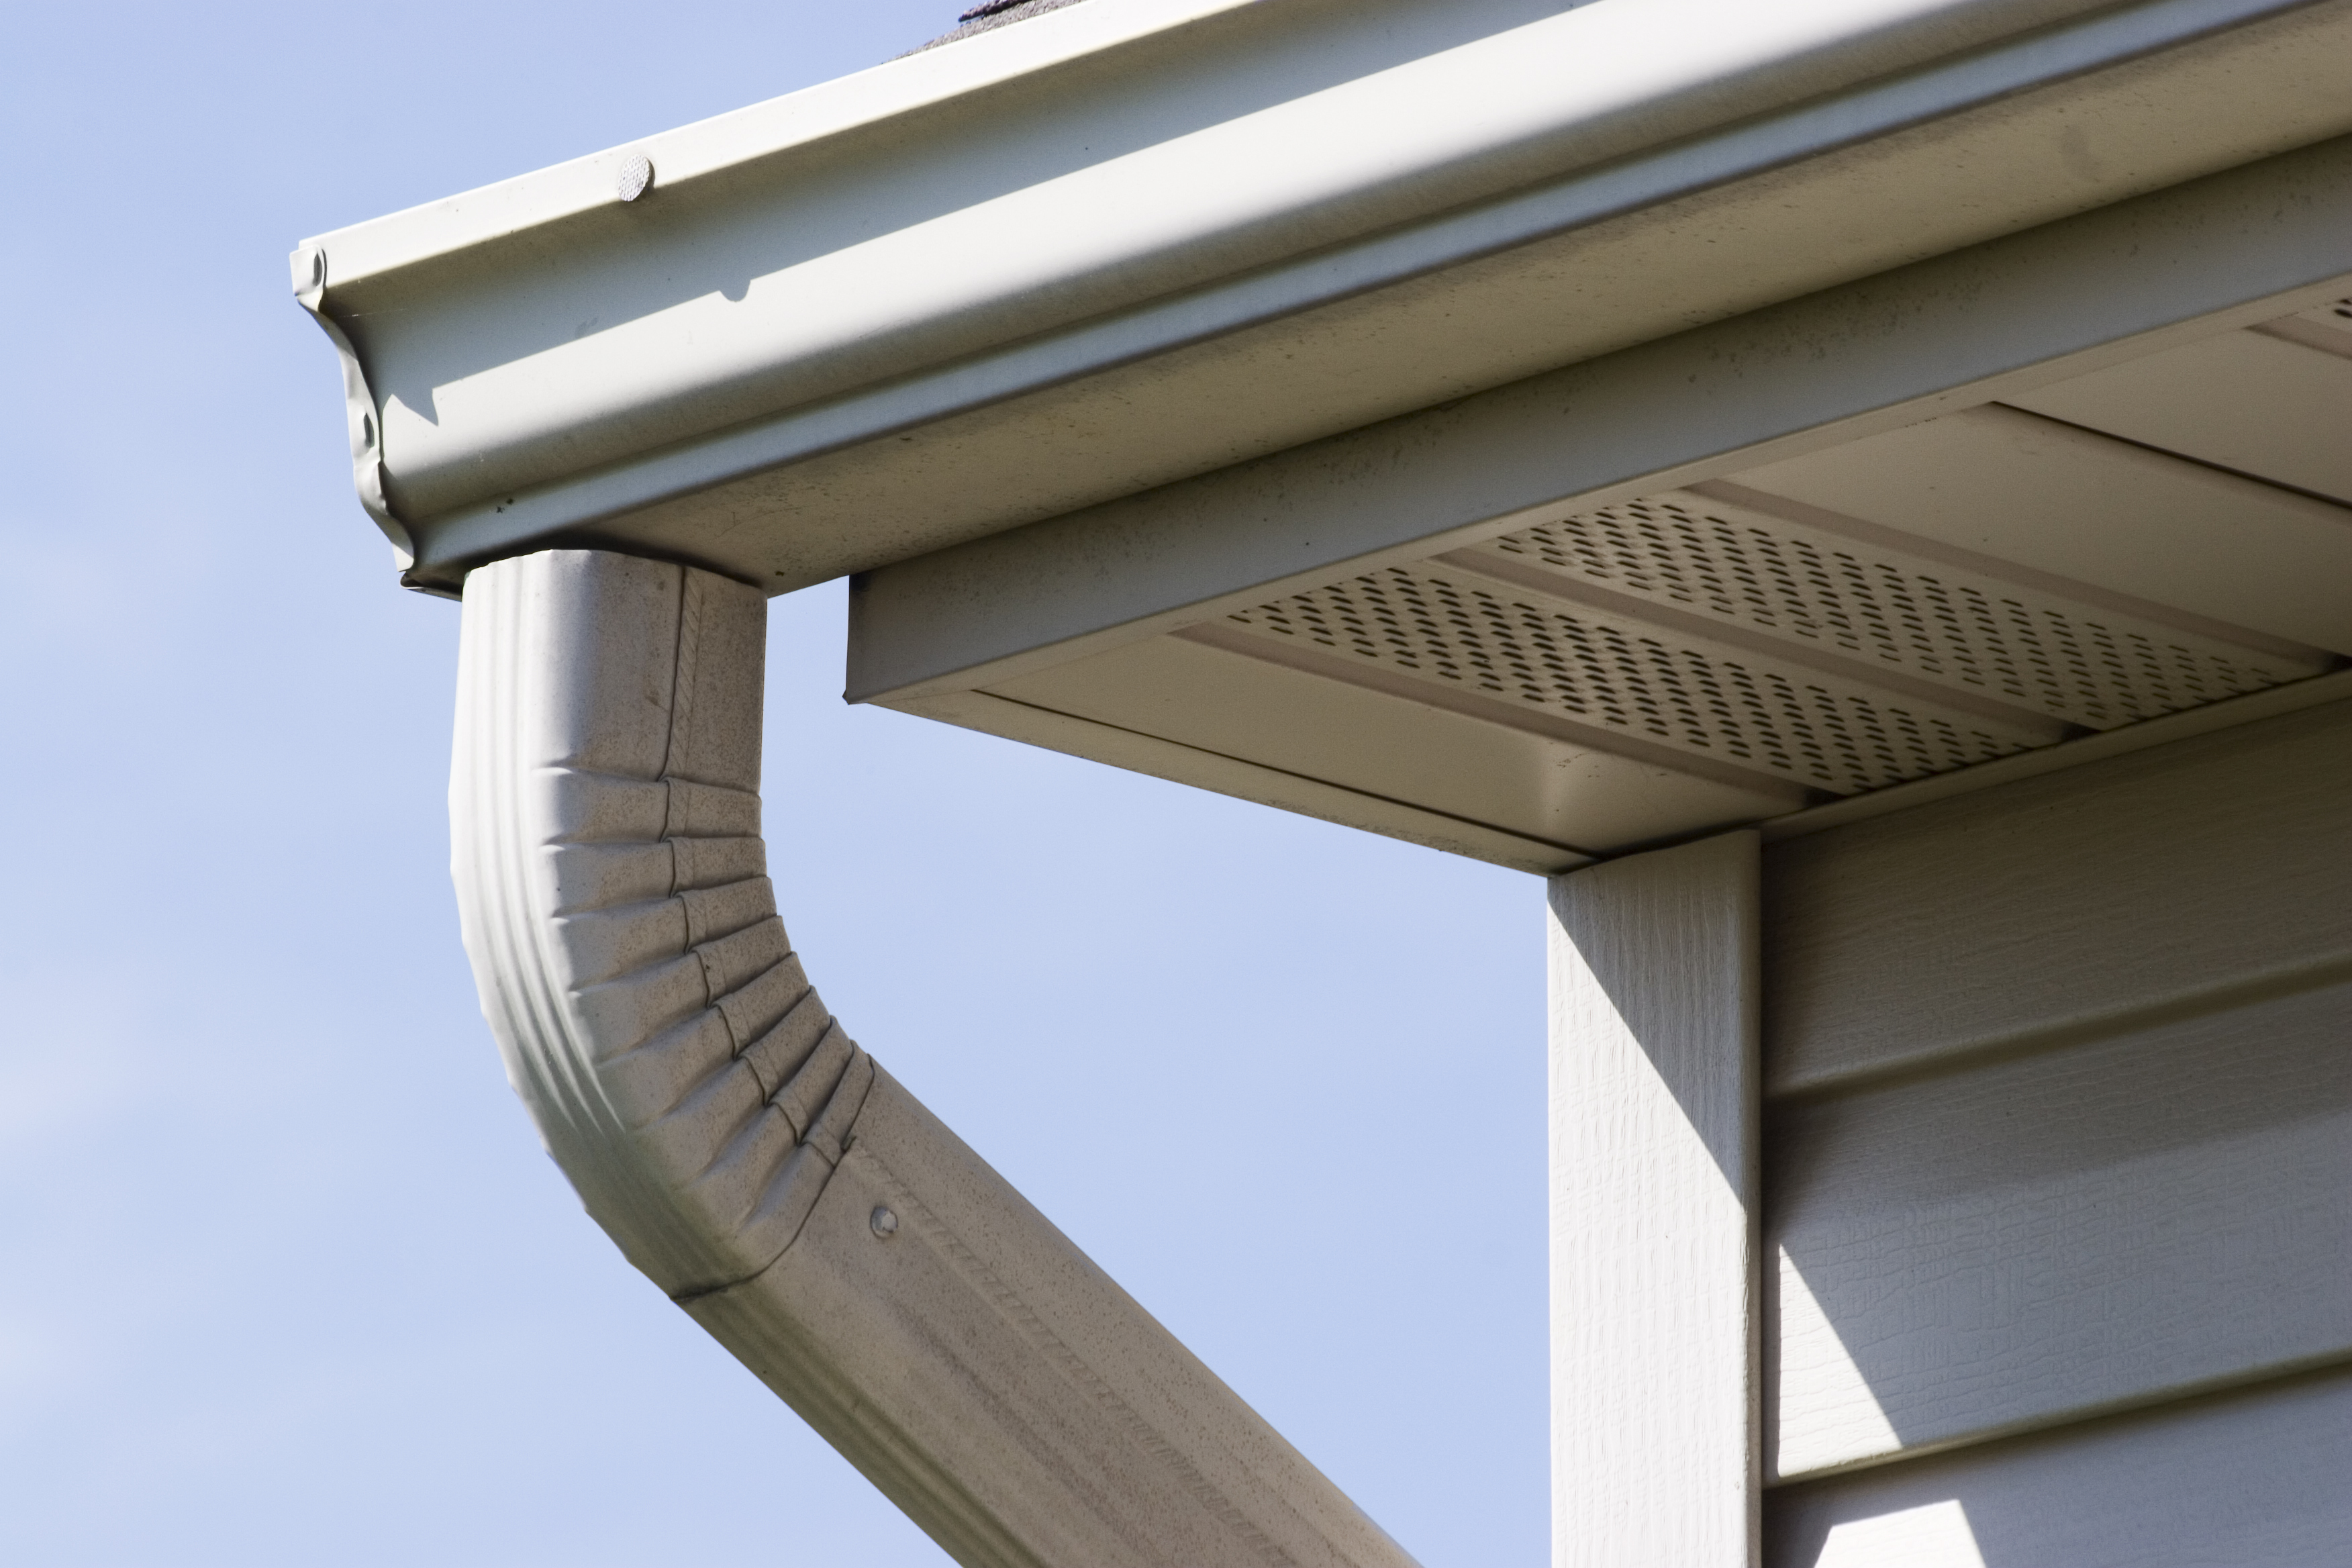 A Homeowner's Guide to Fascia and Soffits | Hunker